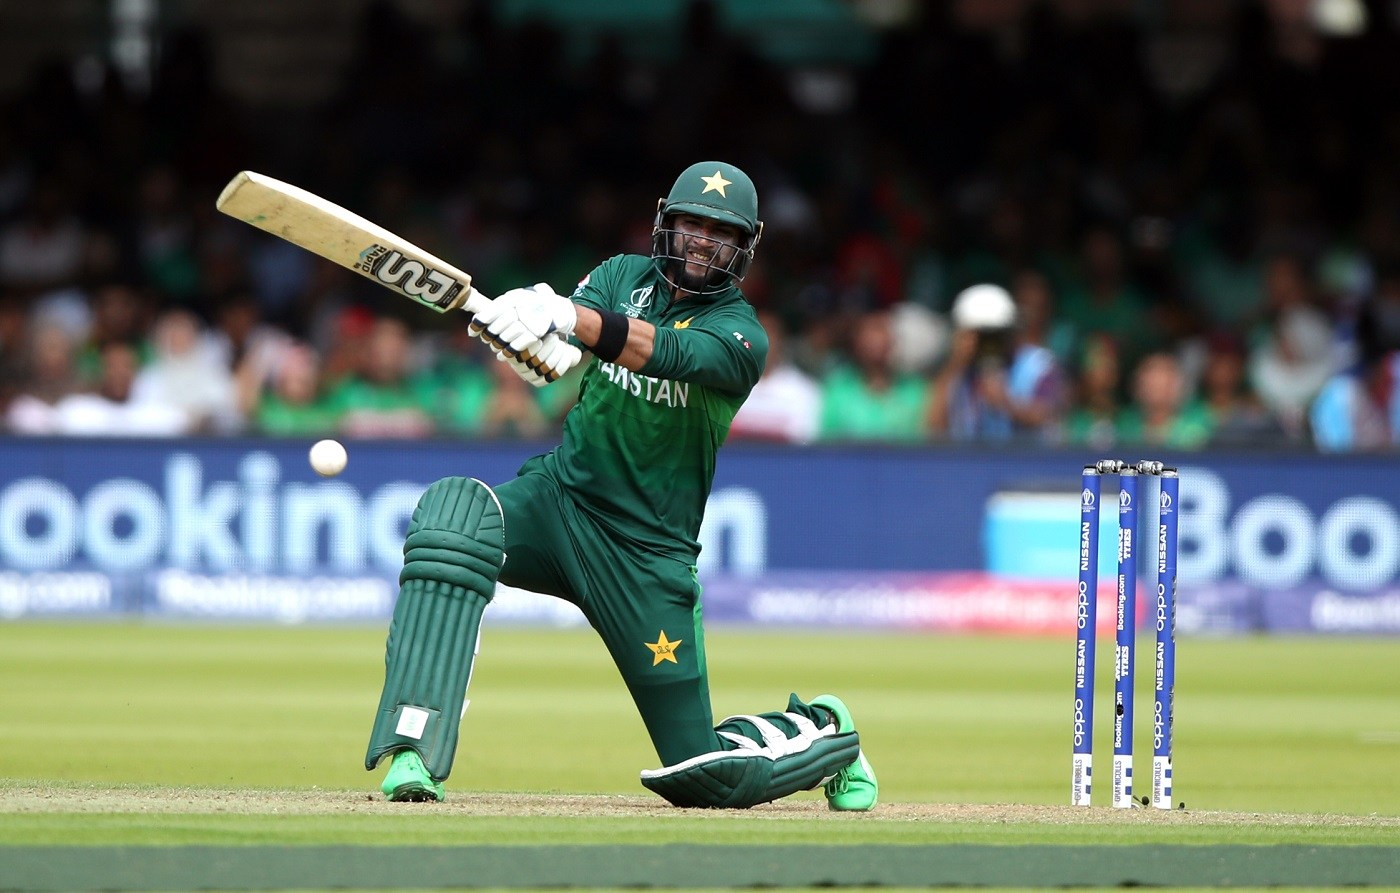 Imad Wasim wants Pakistan in top 3 ICC rankings in all formats